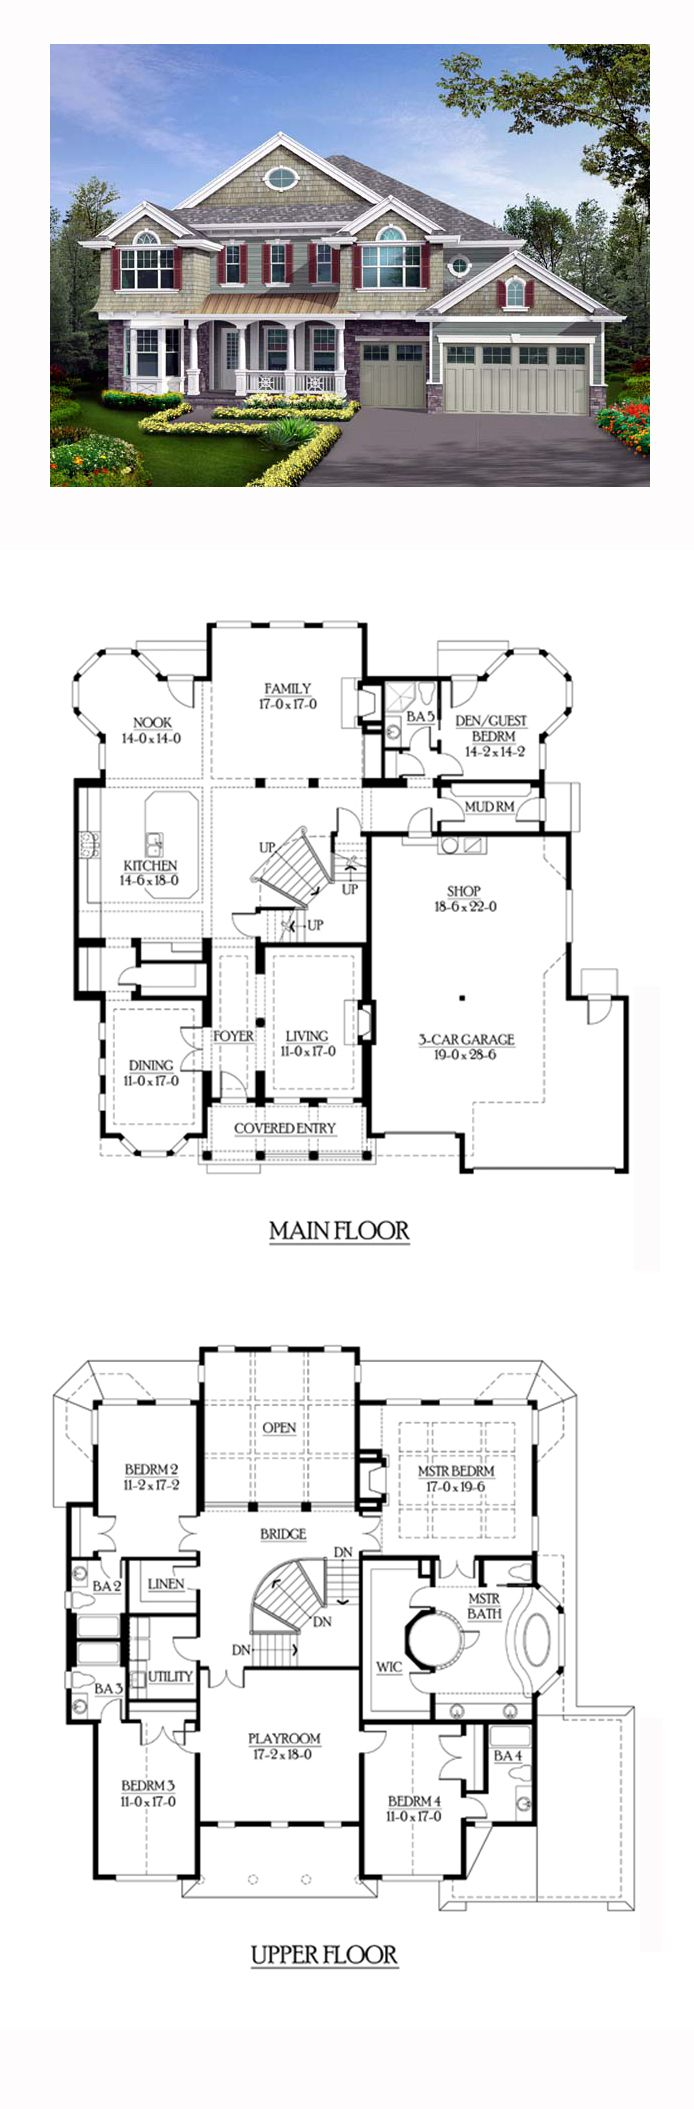 Shingle Style COOL House Plan ID chp 39375